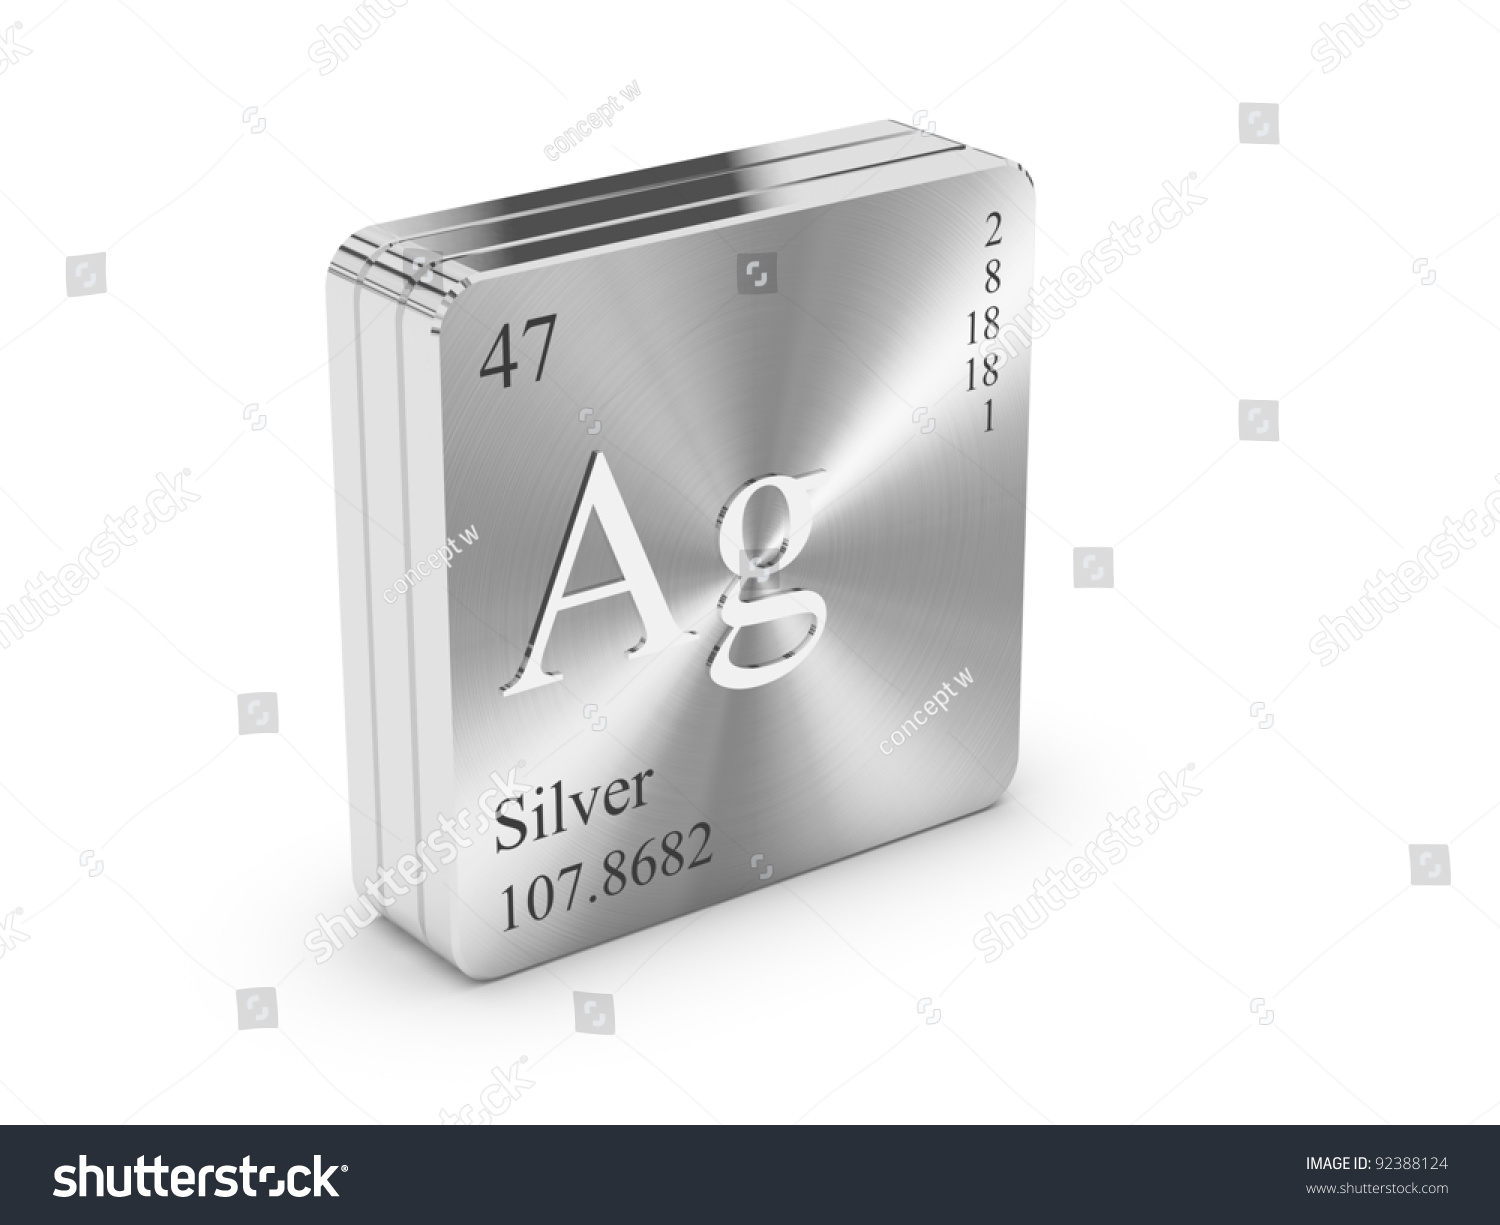 Silver element periodic table on metal stock illustration 92388124 silver element of the periodic table on metal steel block gamestrikefo Image collections